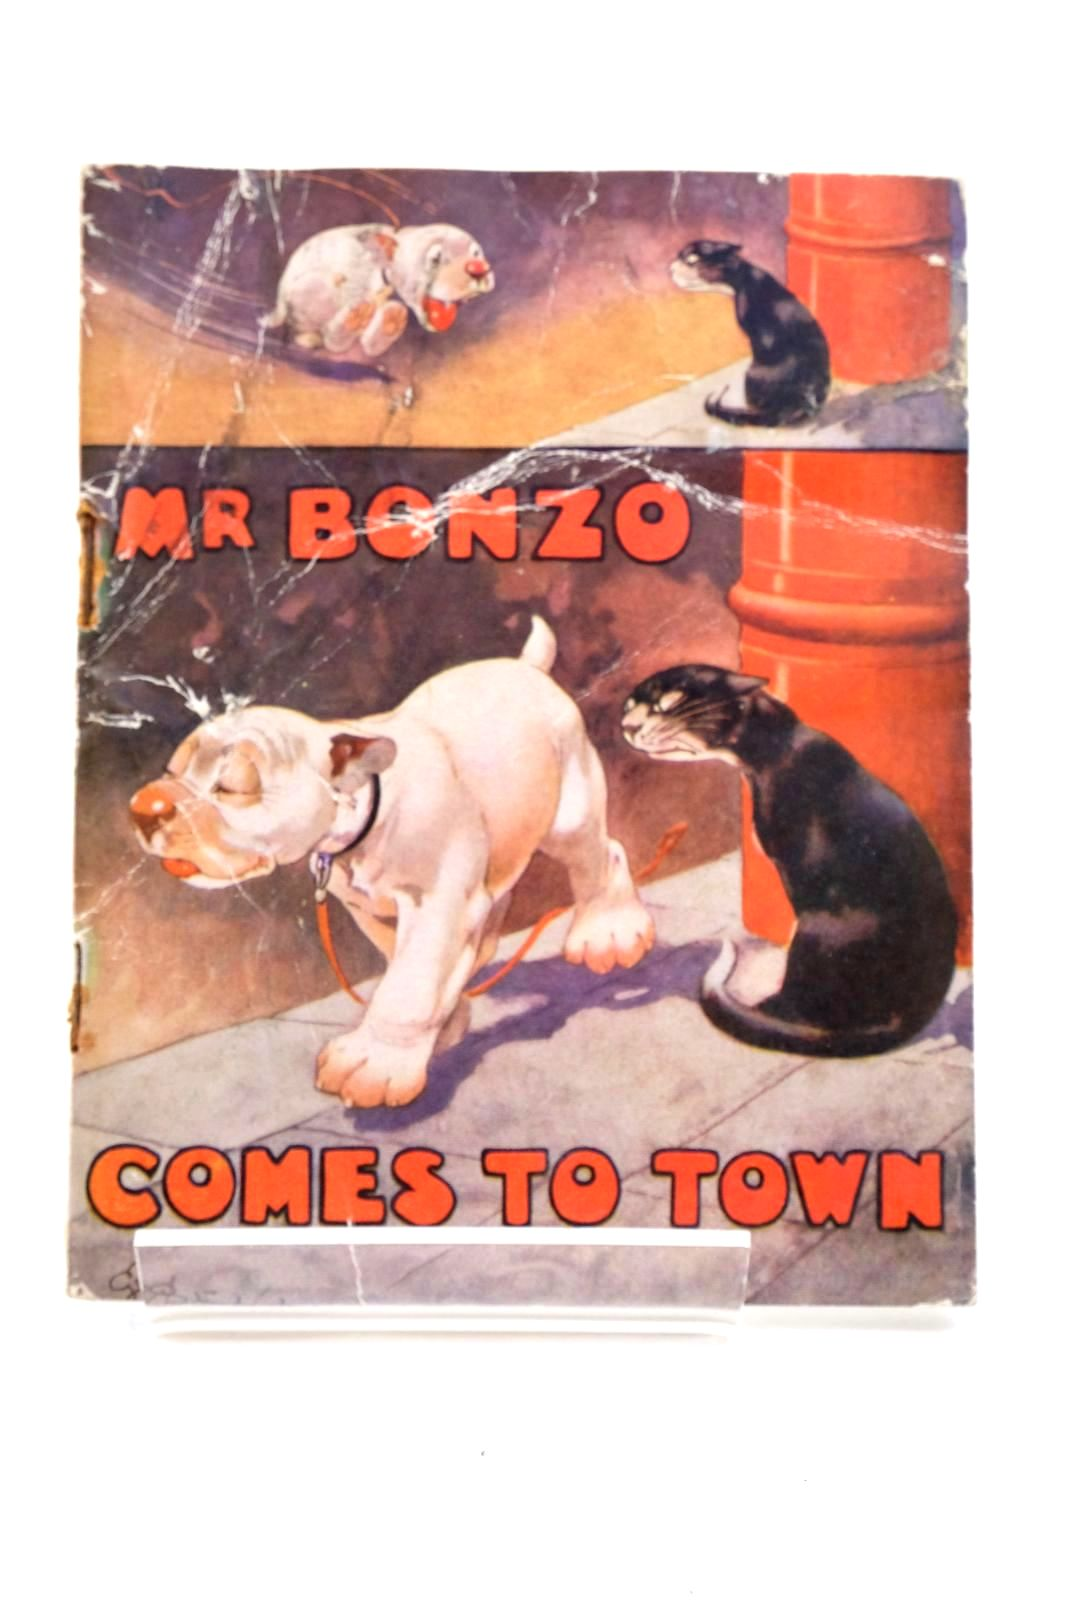 Photo of MR. BONZO COMES TO TOWN written by Studdy, G.E. Jellicoe, George illustrated by Studdy, G.E. published by John Swain & Son Limited, E.P. Dutton & Co. (STOCK CODE: 1321603)  for sale by Stella & Rose's Books